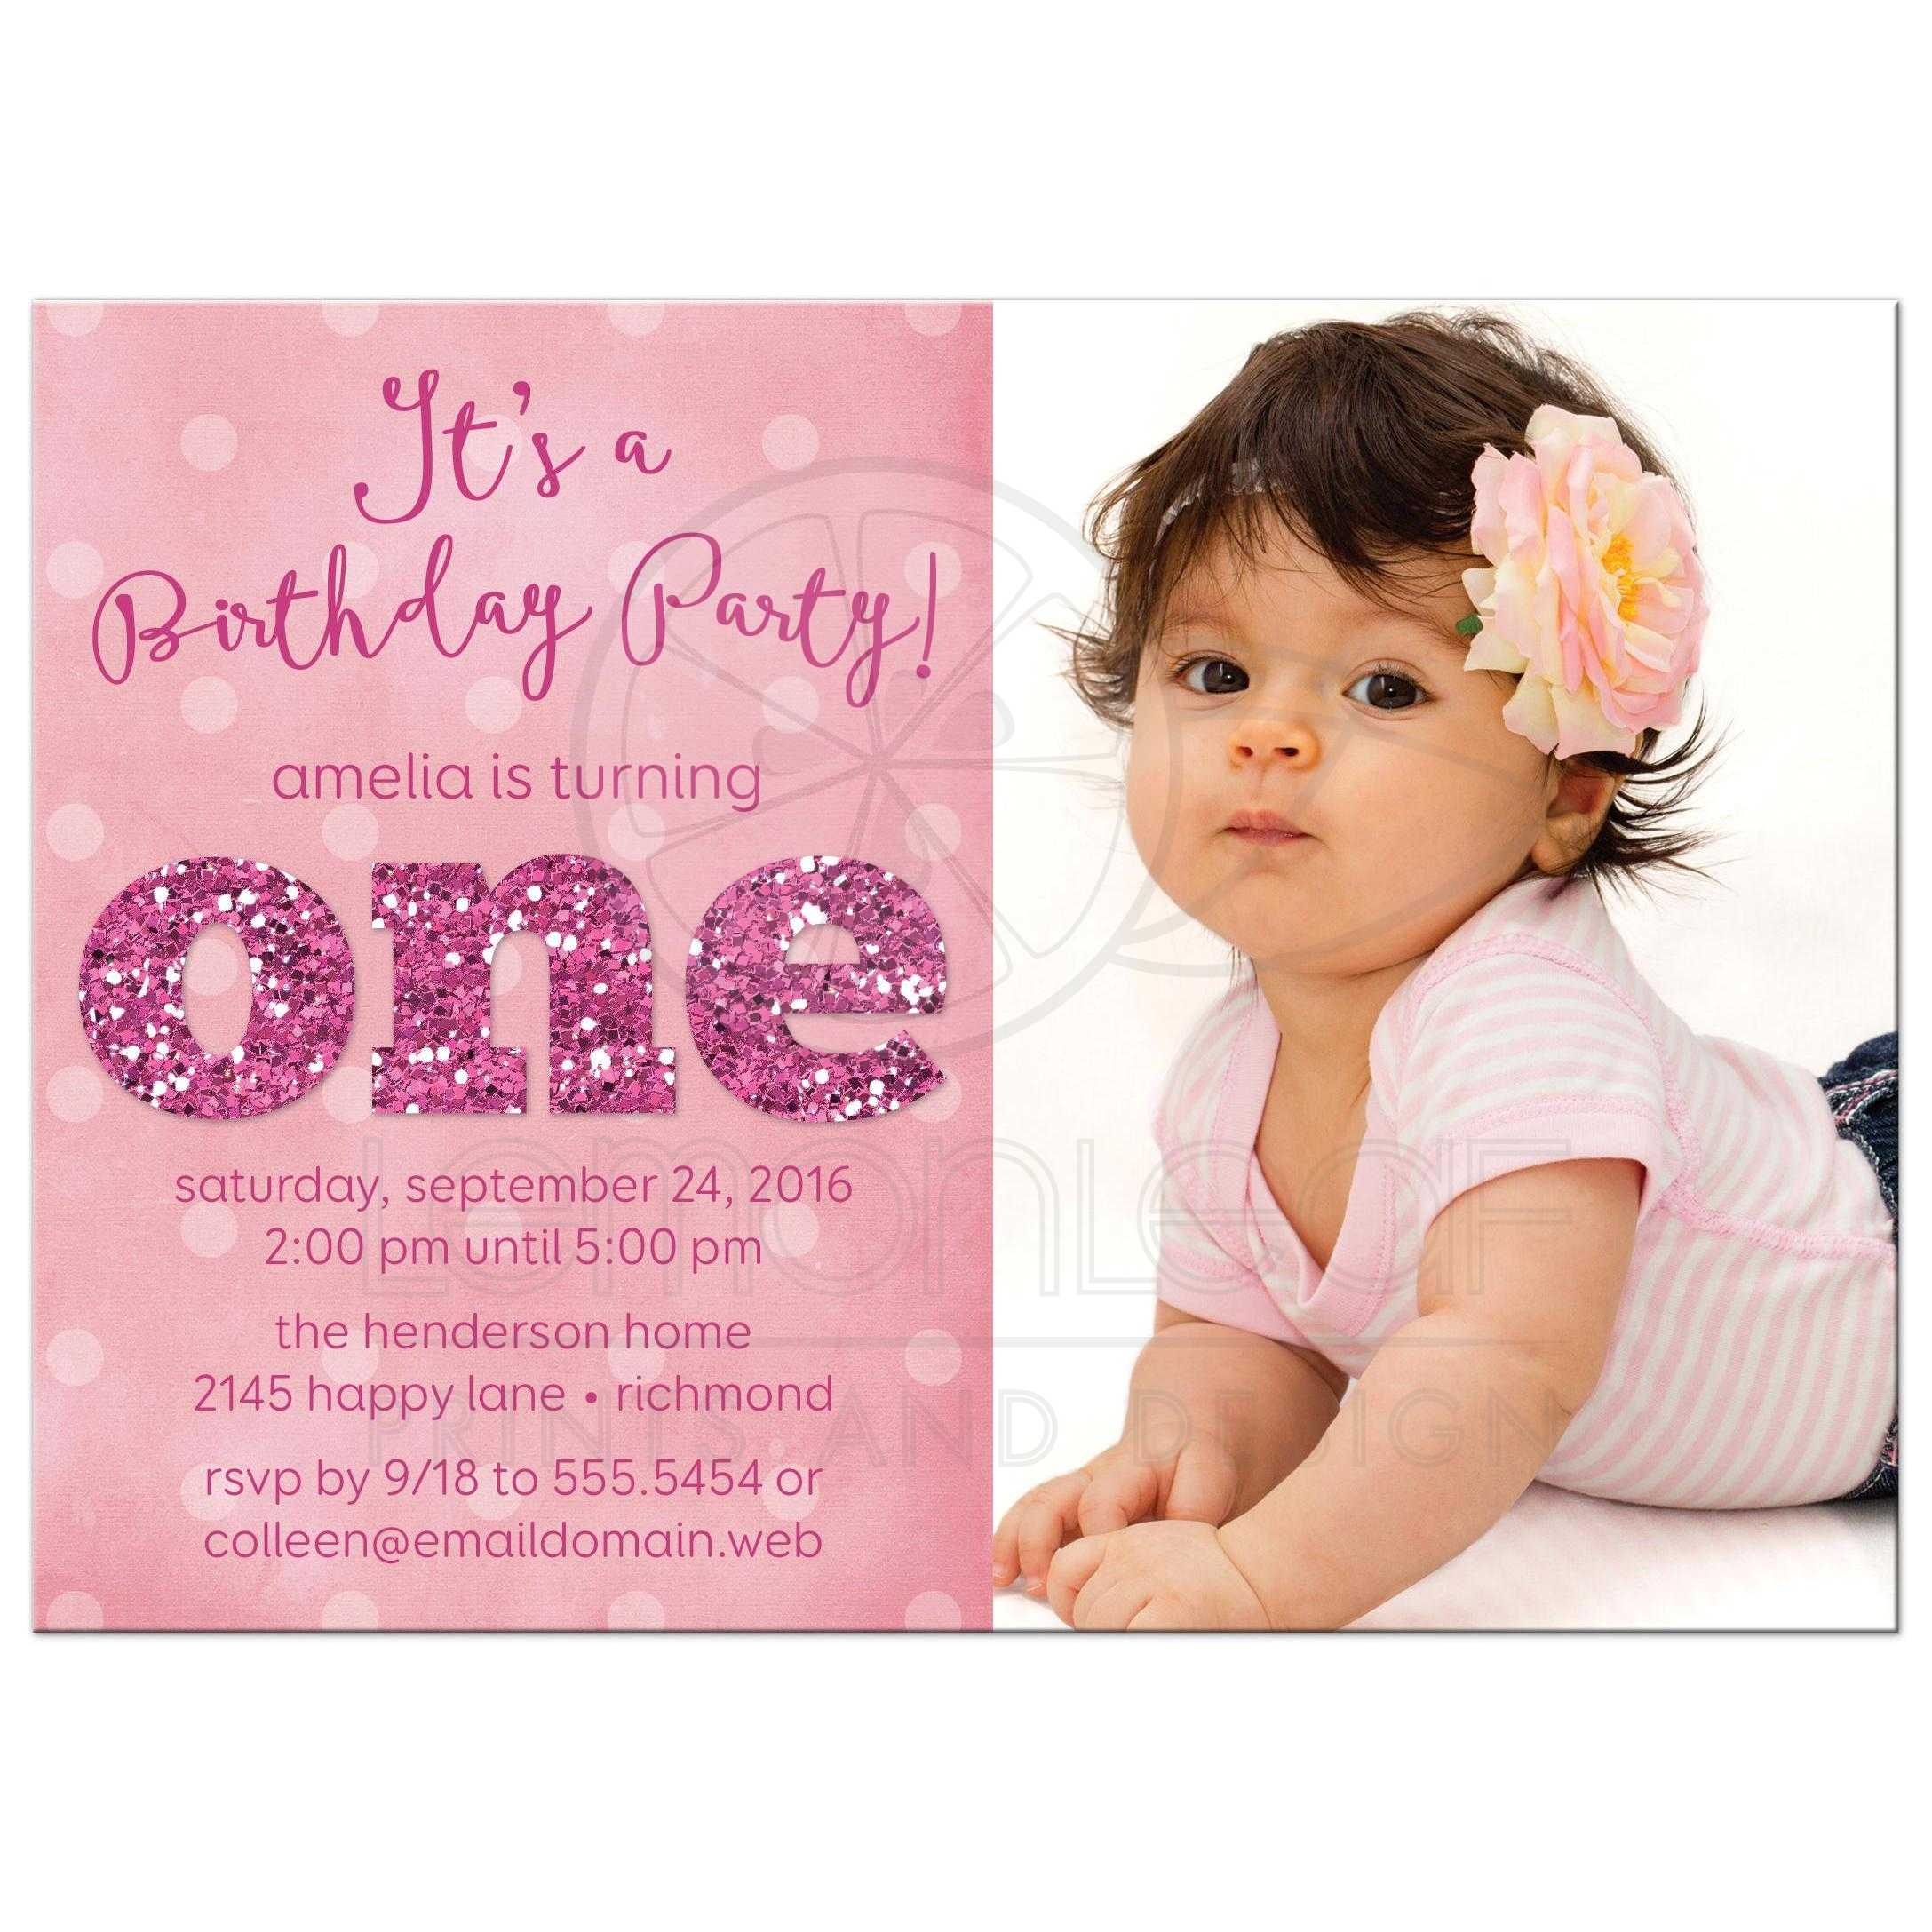 1st birthday invitations templates with photo free ; first-birthday-invitation-templates-free-to-inspire-you-How-To-Make-Your-Own-Invitations-so-catchy-20